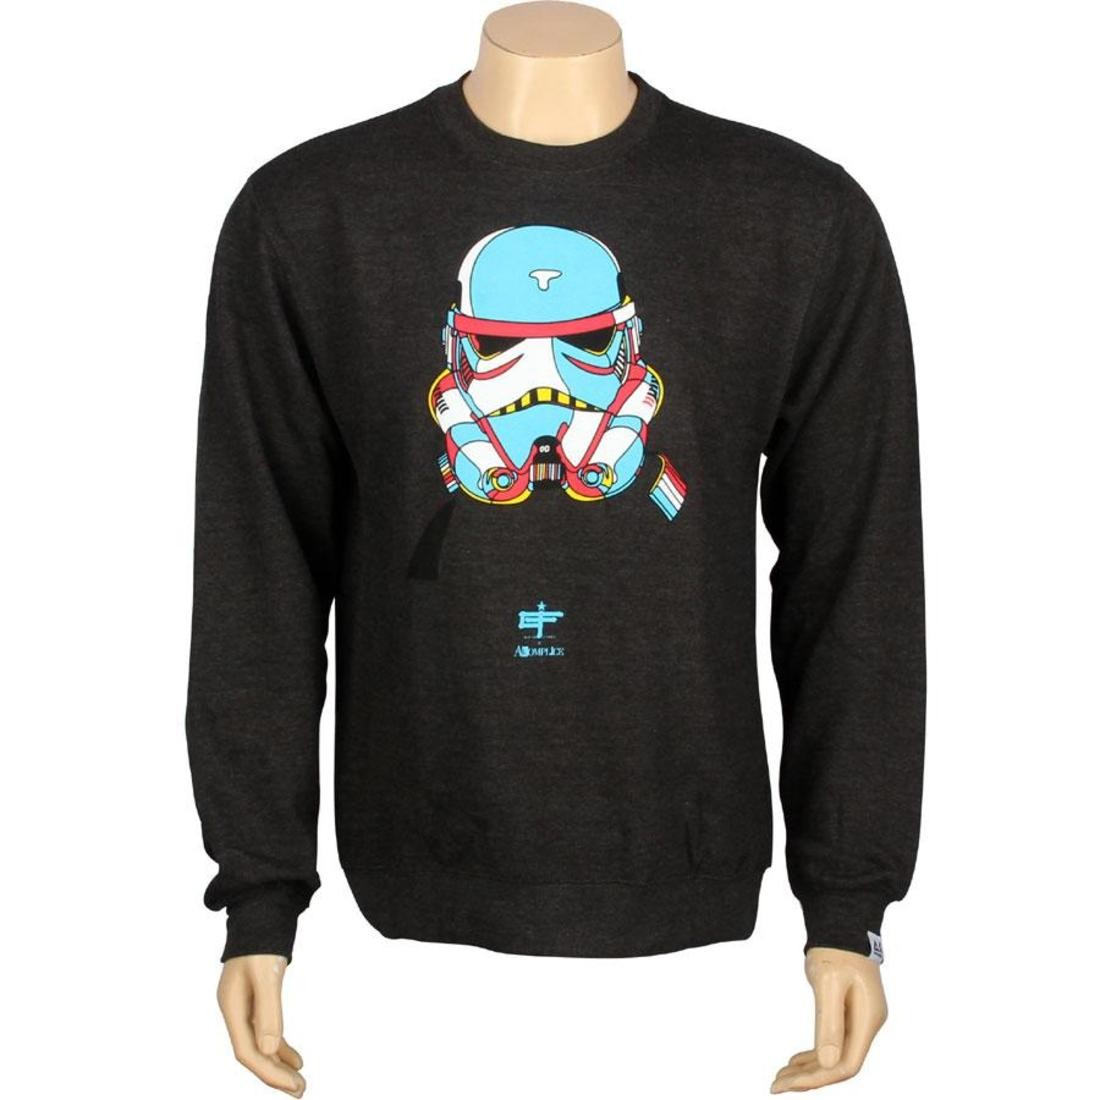 【海外限定】フリース トップス カットソー 【 AKOMPLICE X DAVID FLORES STORM TROOPER 2 FLEECE CREWNECK CHARCOAL BLUE 】